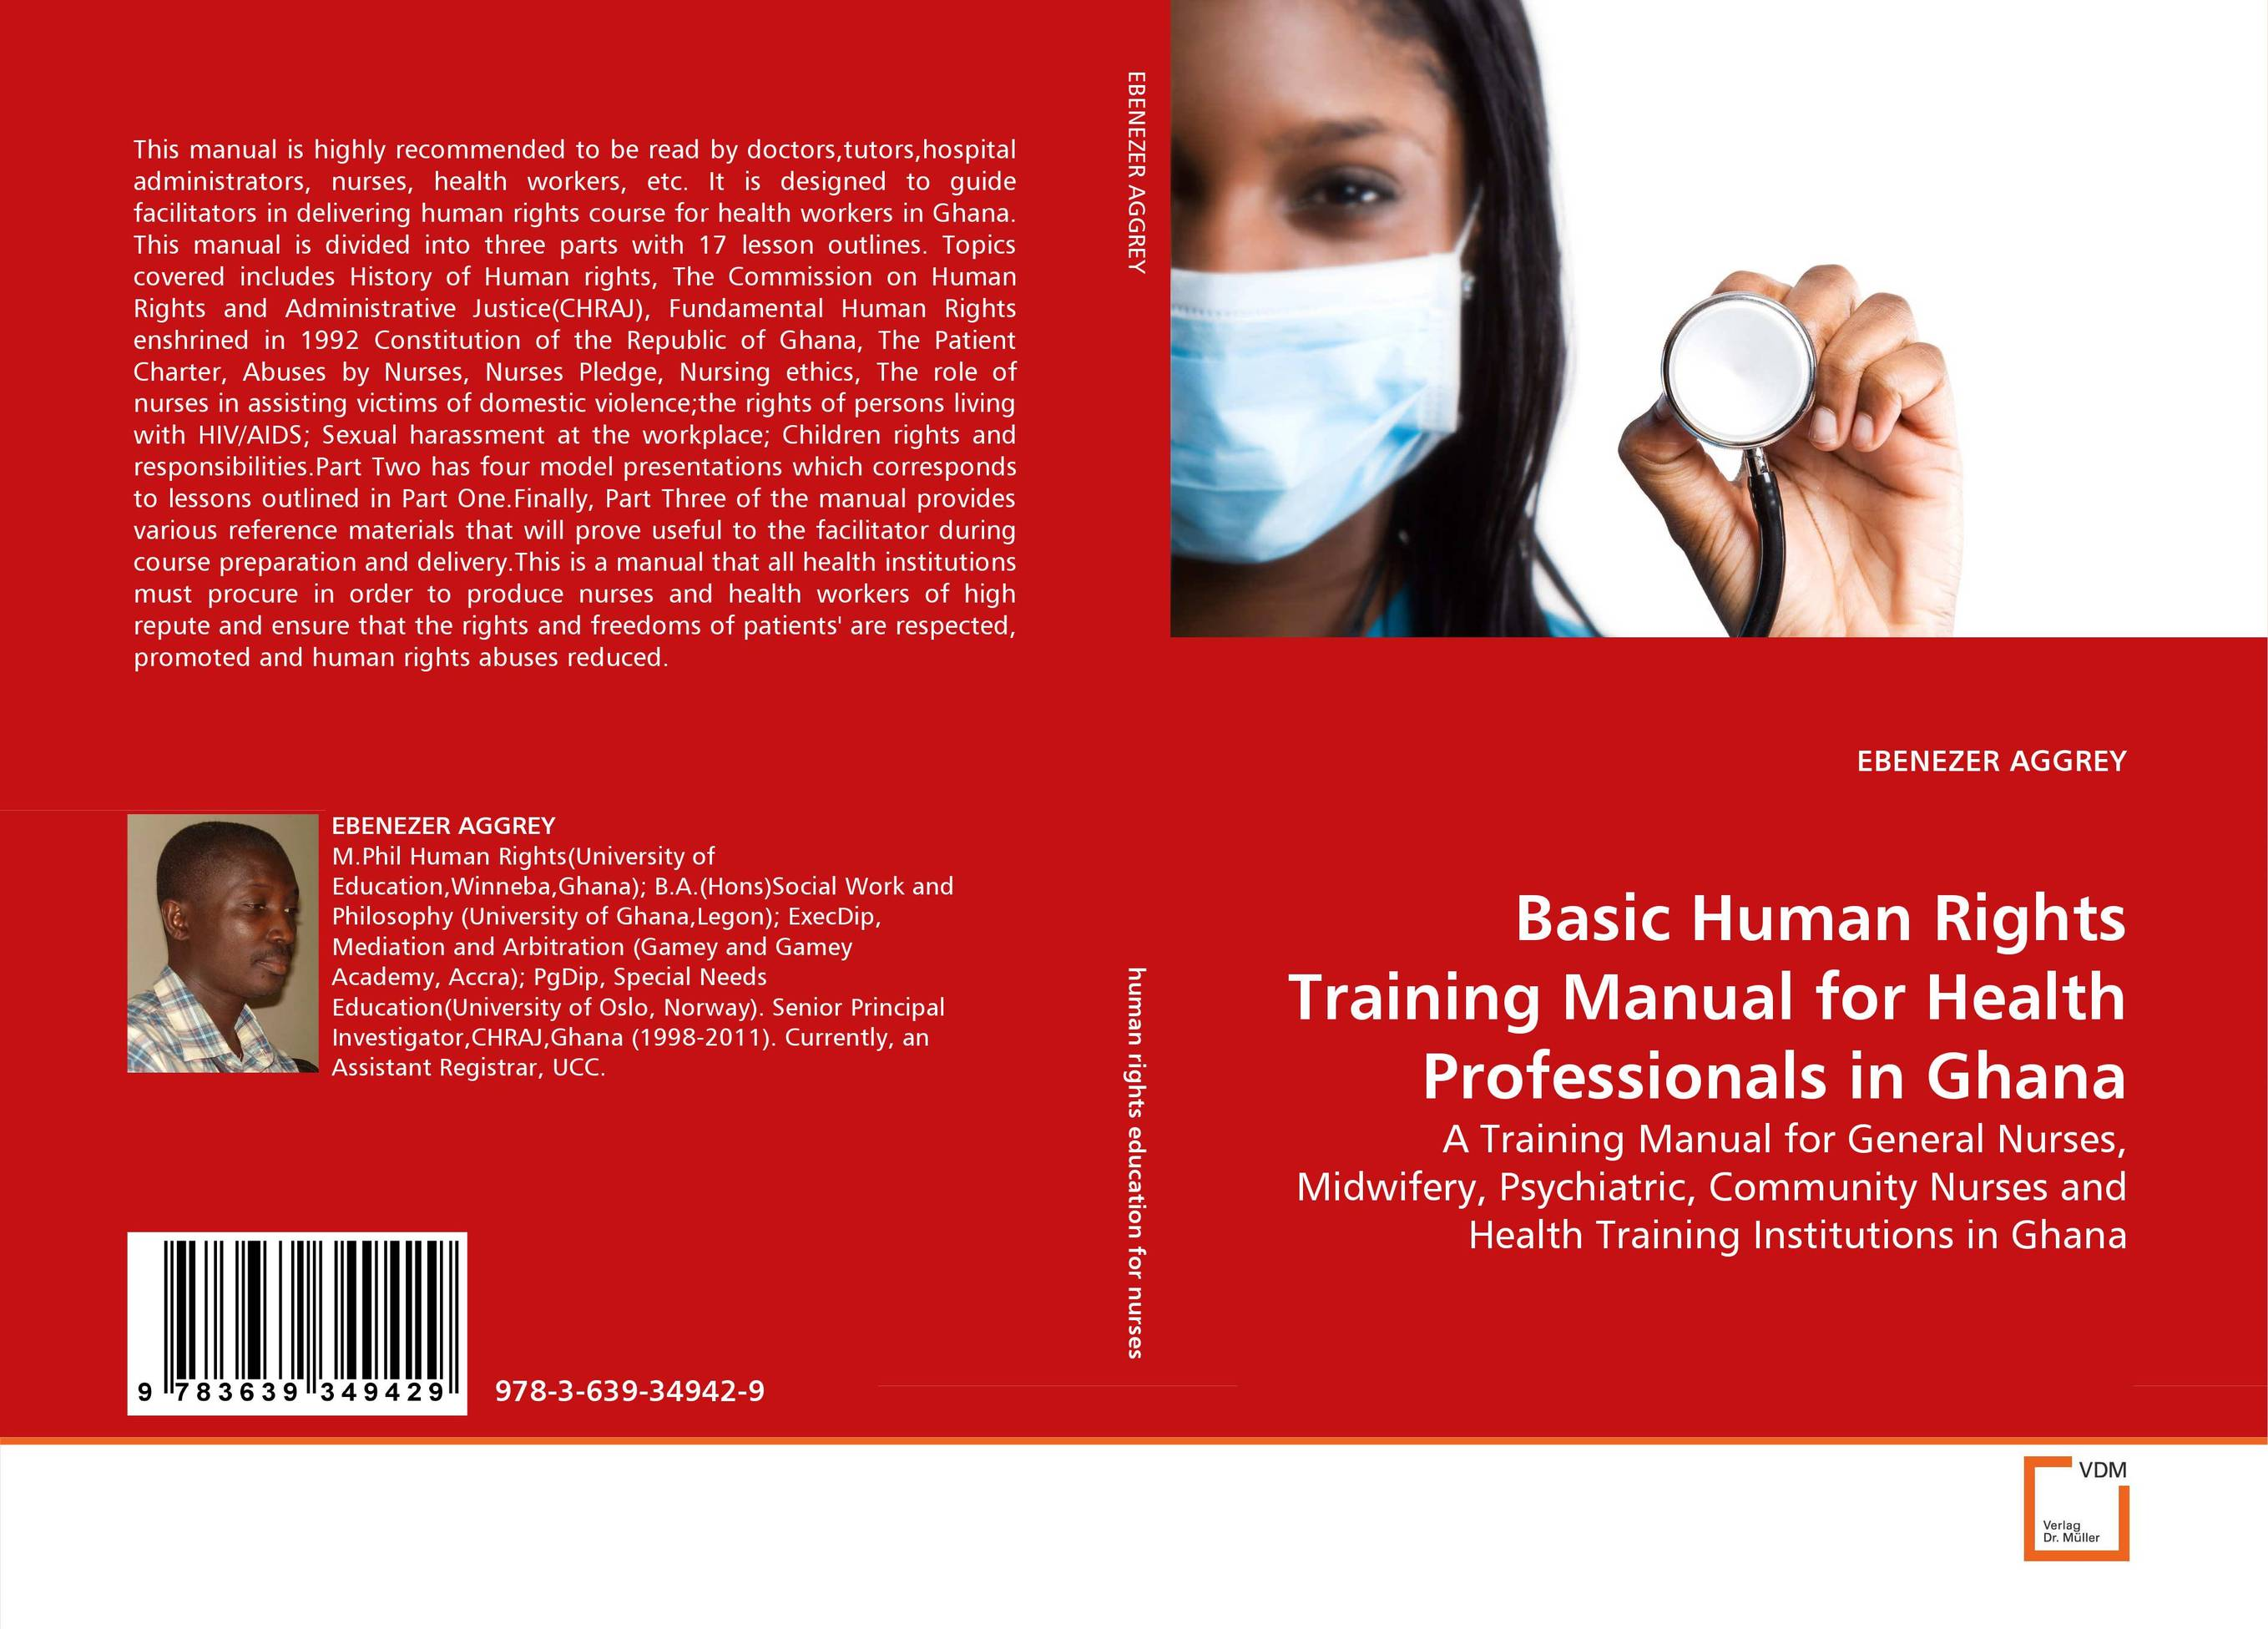 Basic Human Rights Training Manual for Health Professionals in Ghana education training and human rights of the prisoners